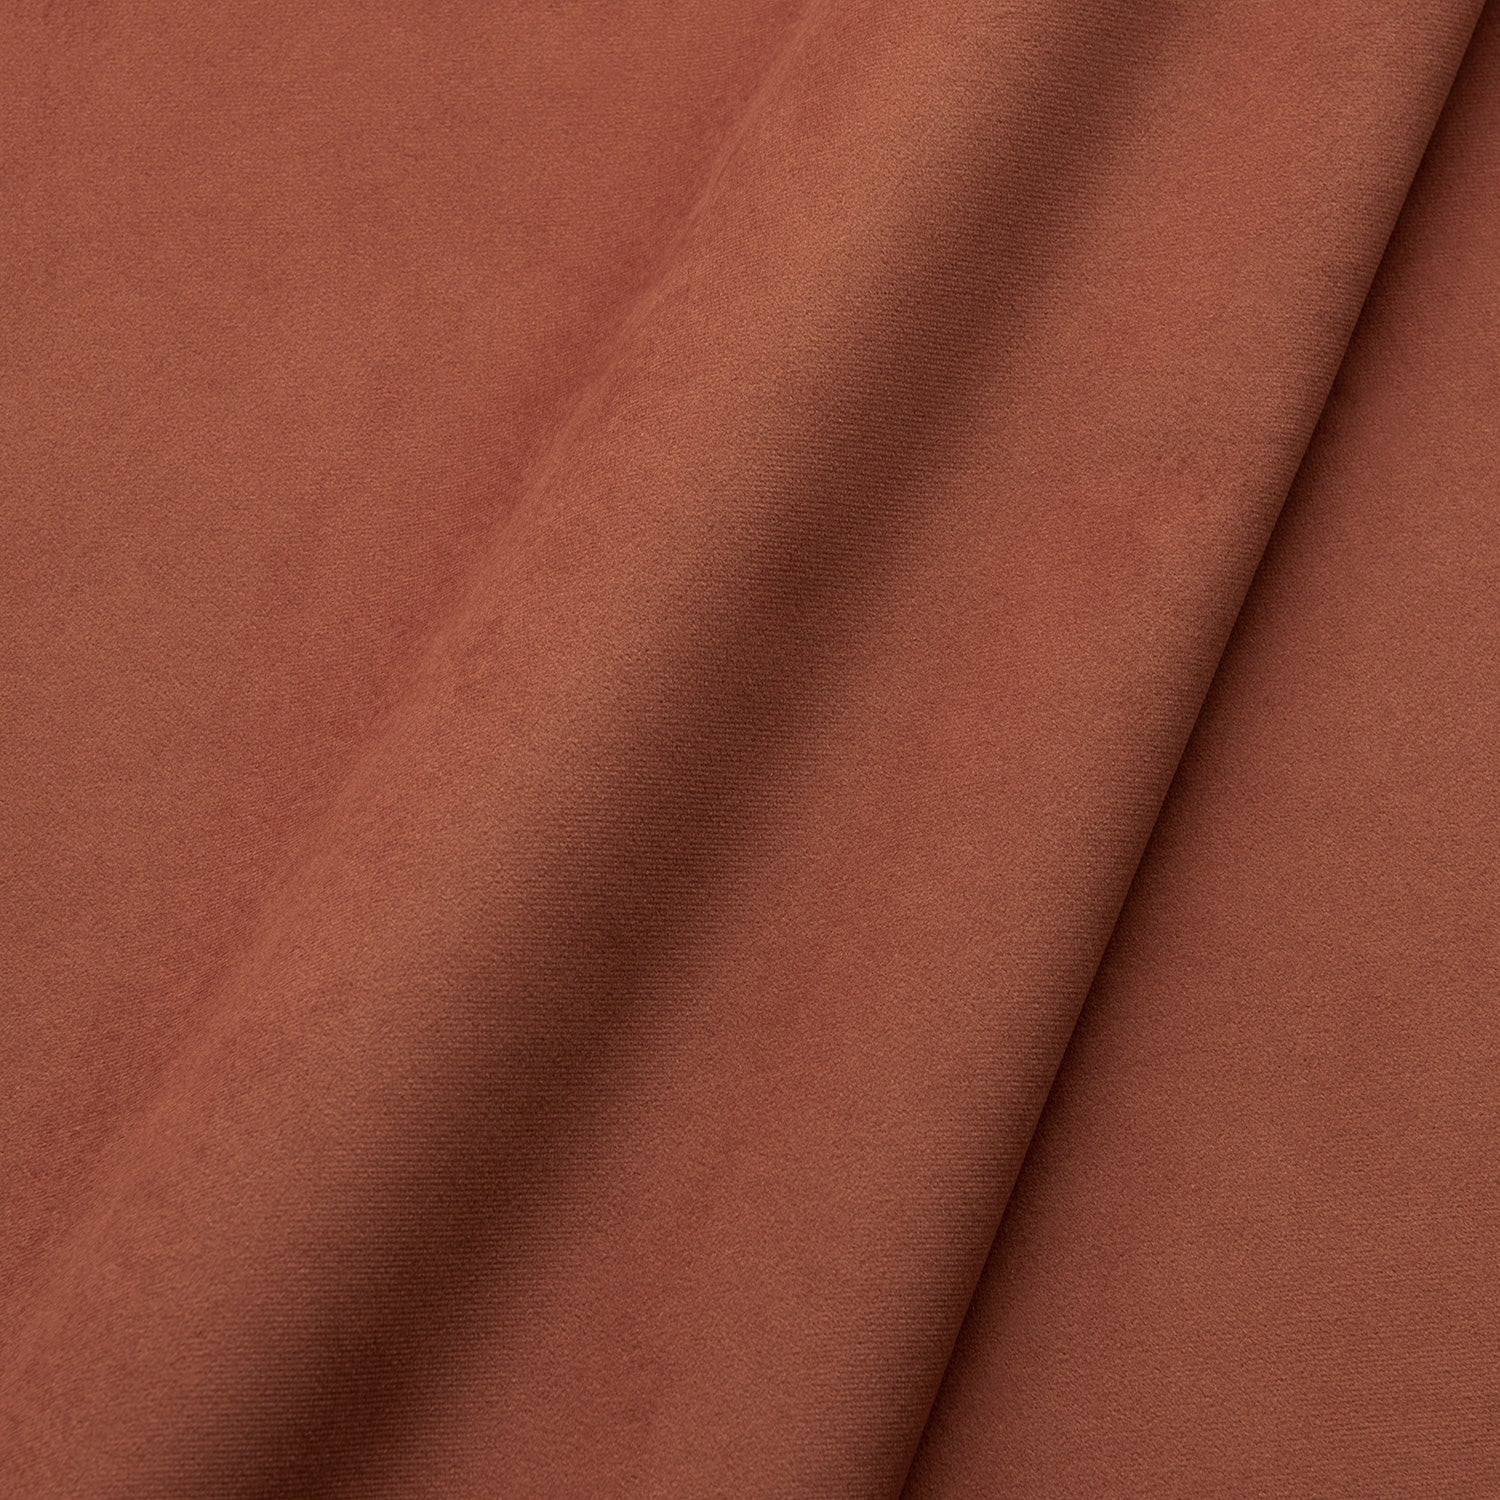 Fabric swatch of a plain stain resistant velvet upholstery fabric in a terracotta colour